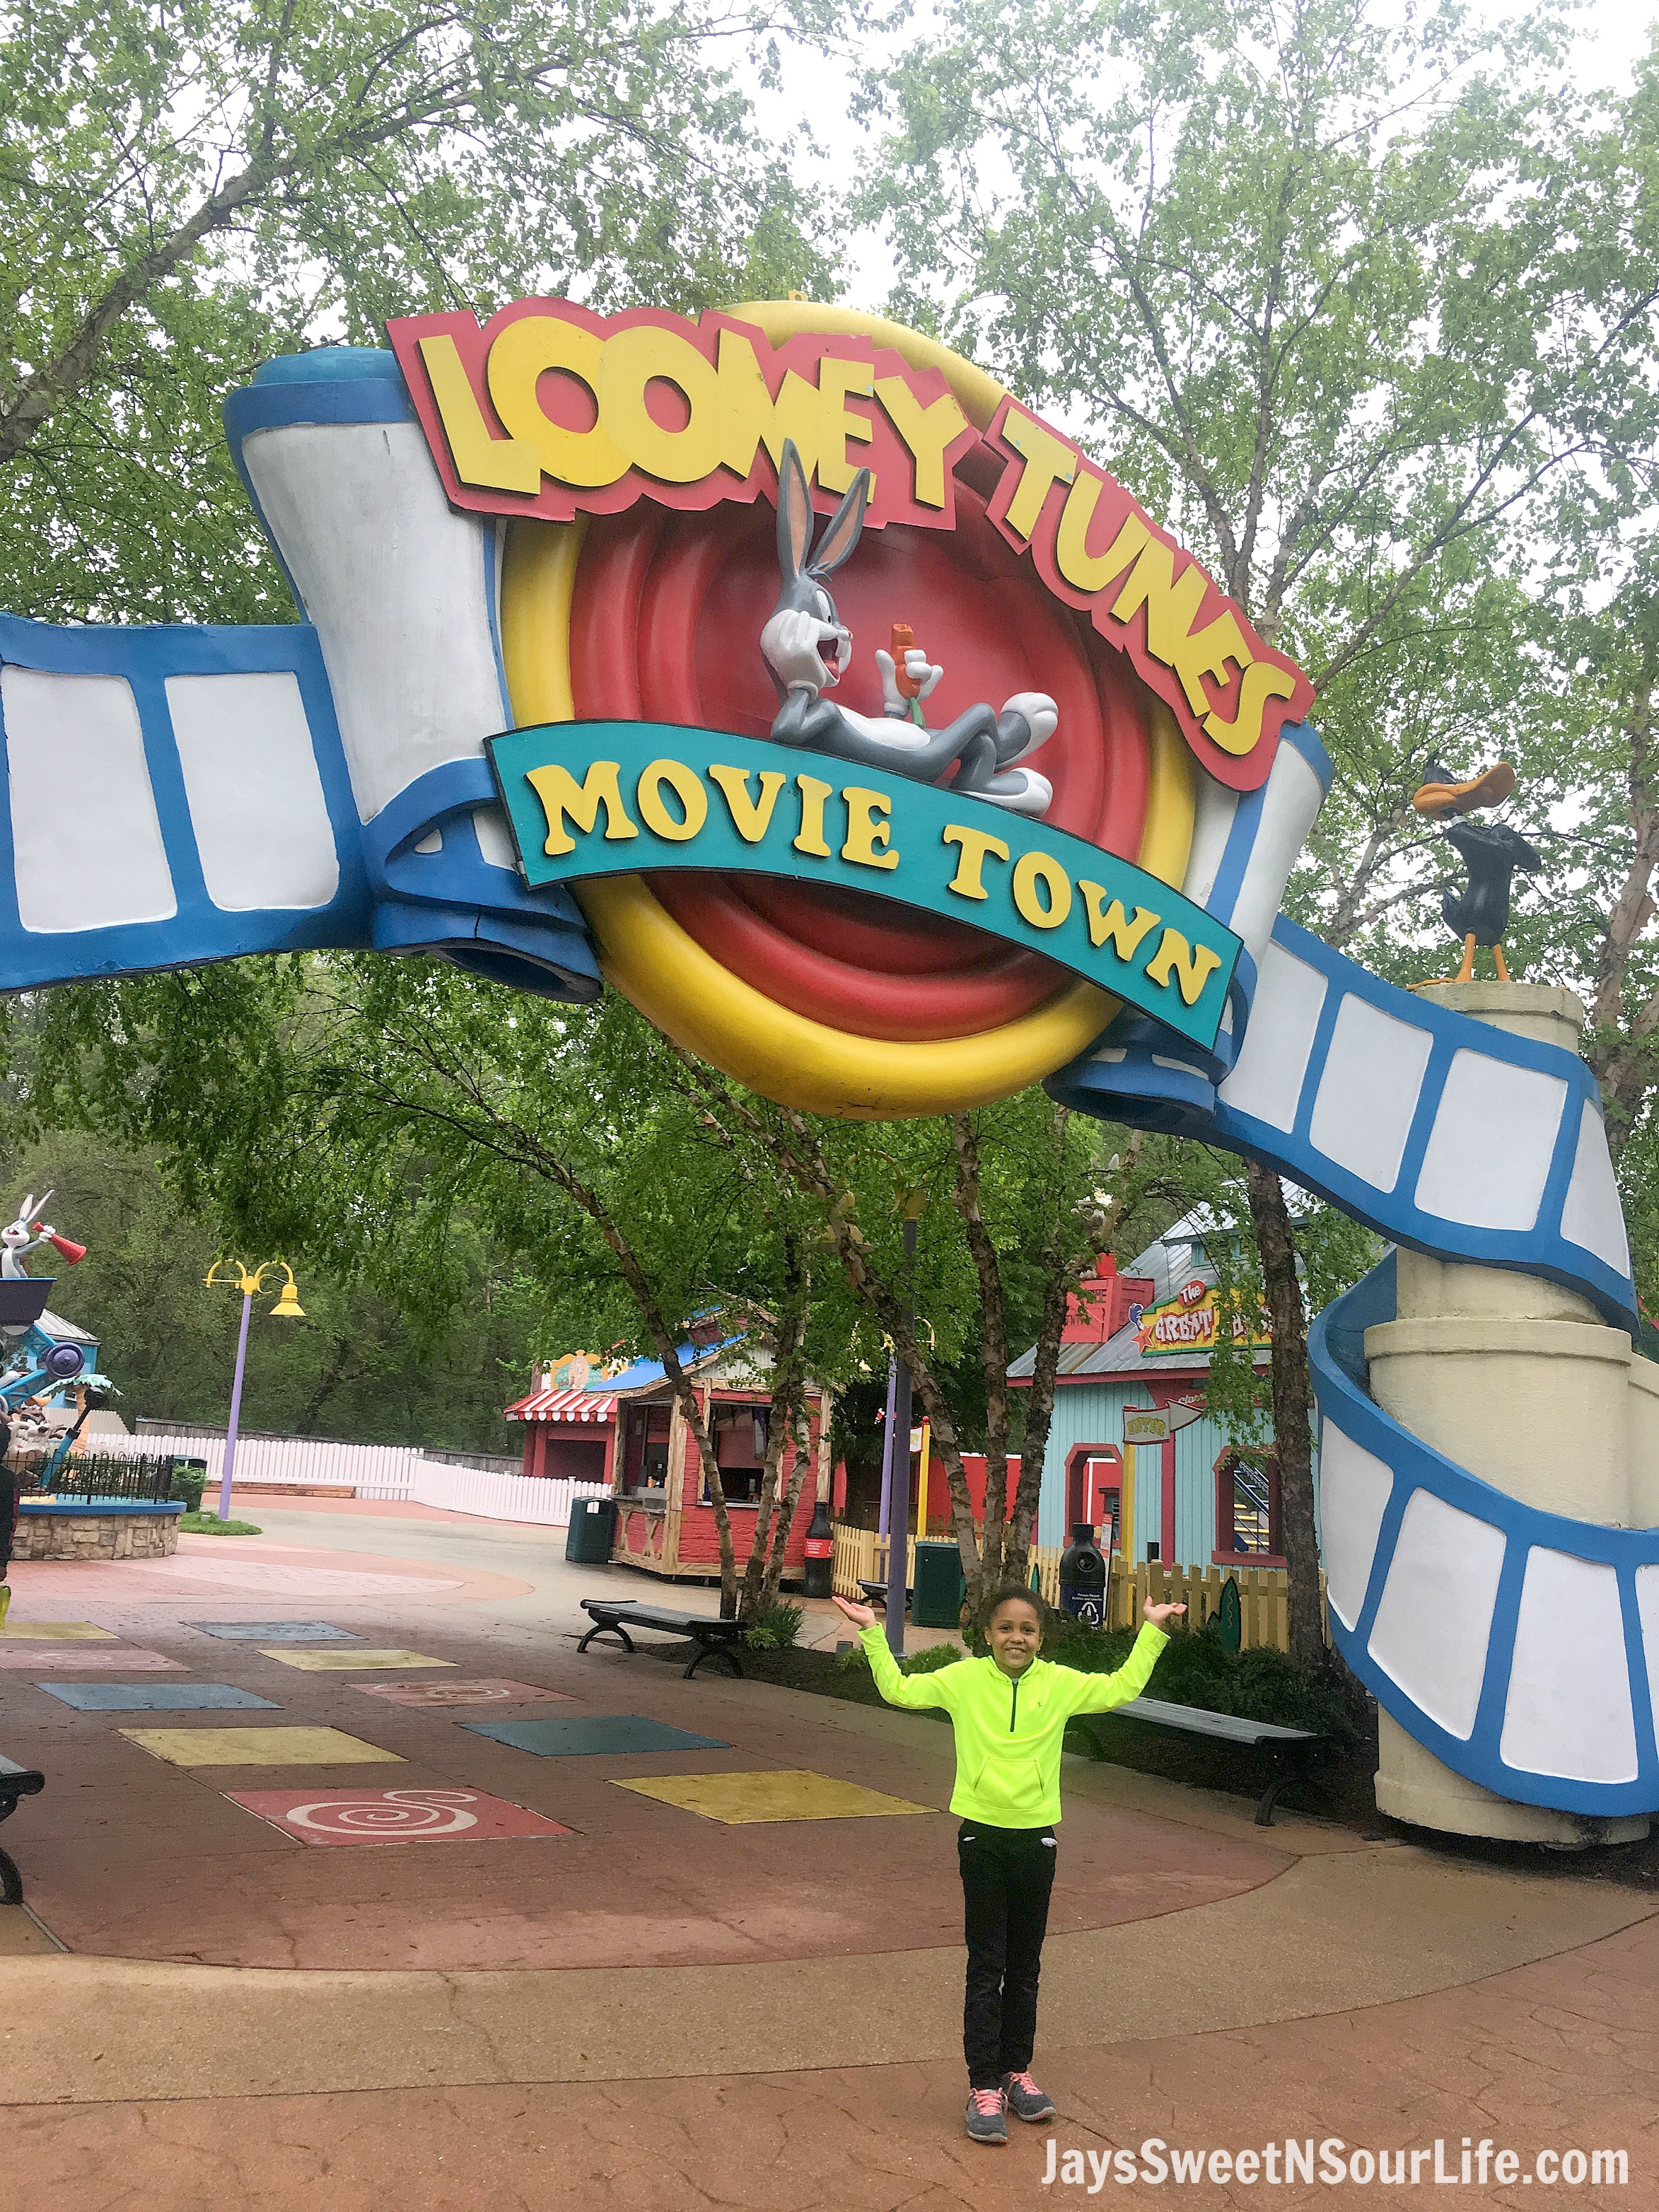 8 Tips For Rainy Day Fun At Six Flags America Looney Toons. If you are planning a trip to Six Flags America and realized the weather calls for rain don't cancel your plans! These 8 Tips For Rainy Day Fun At Six Flags America will save the day.